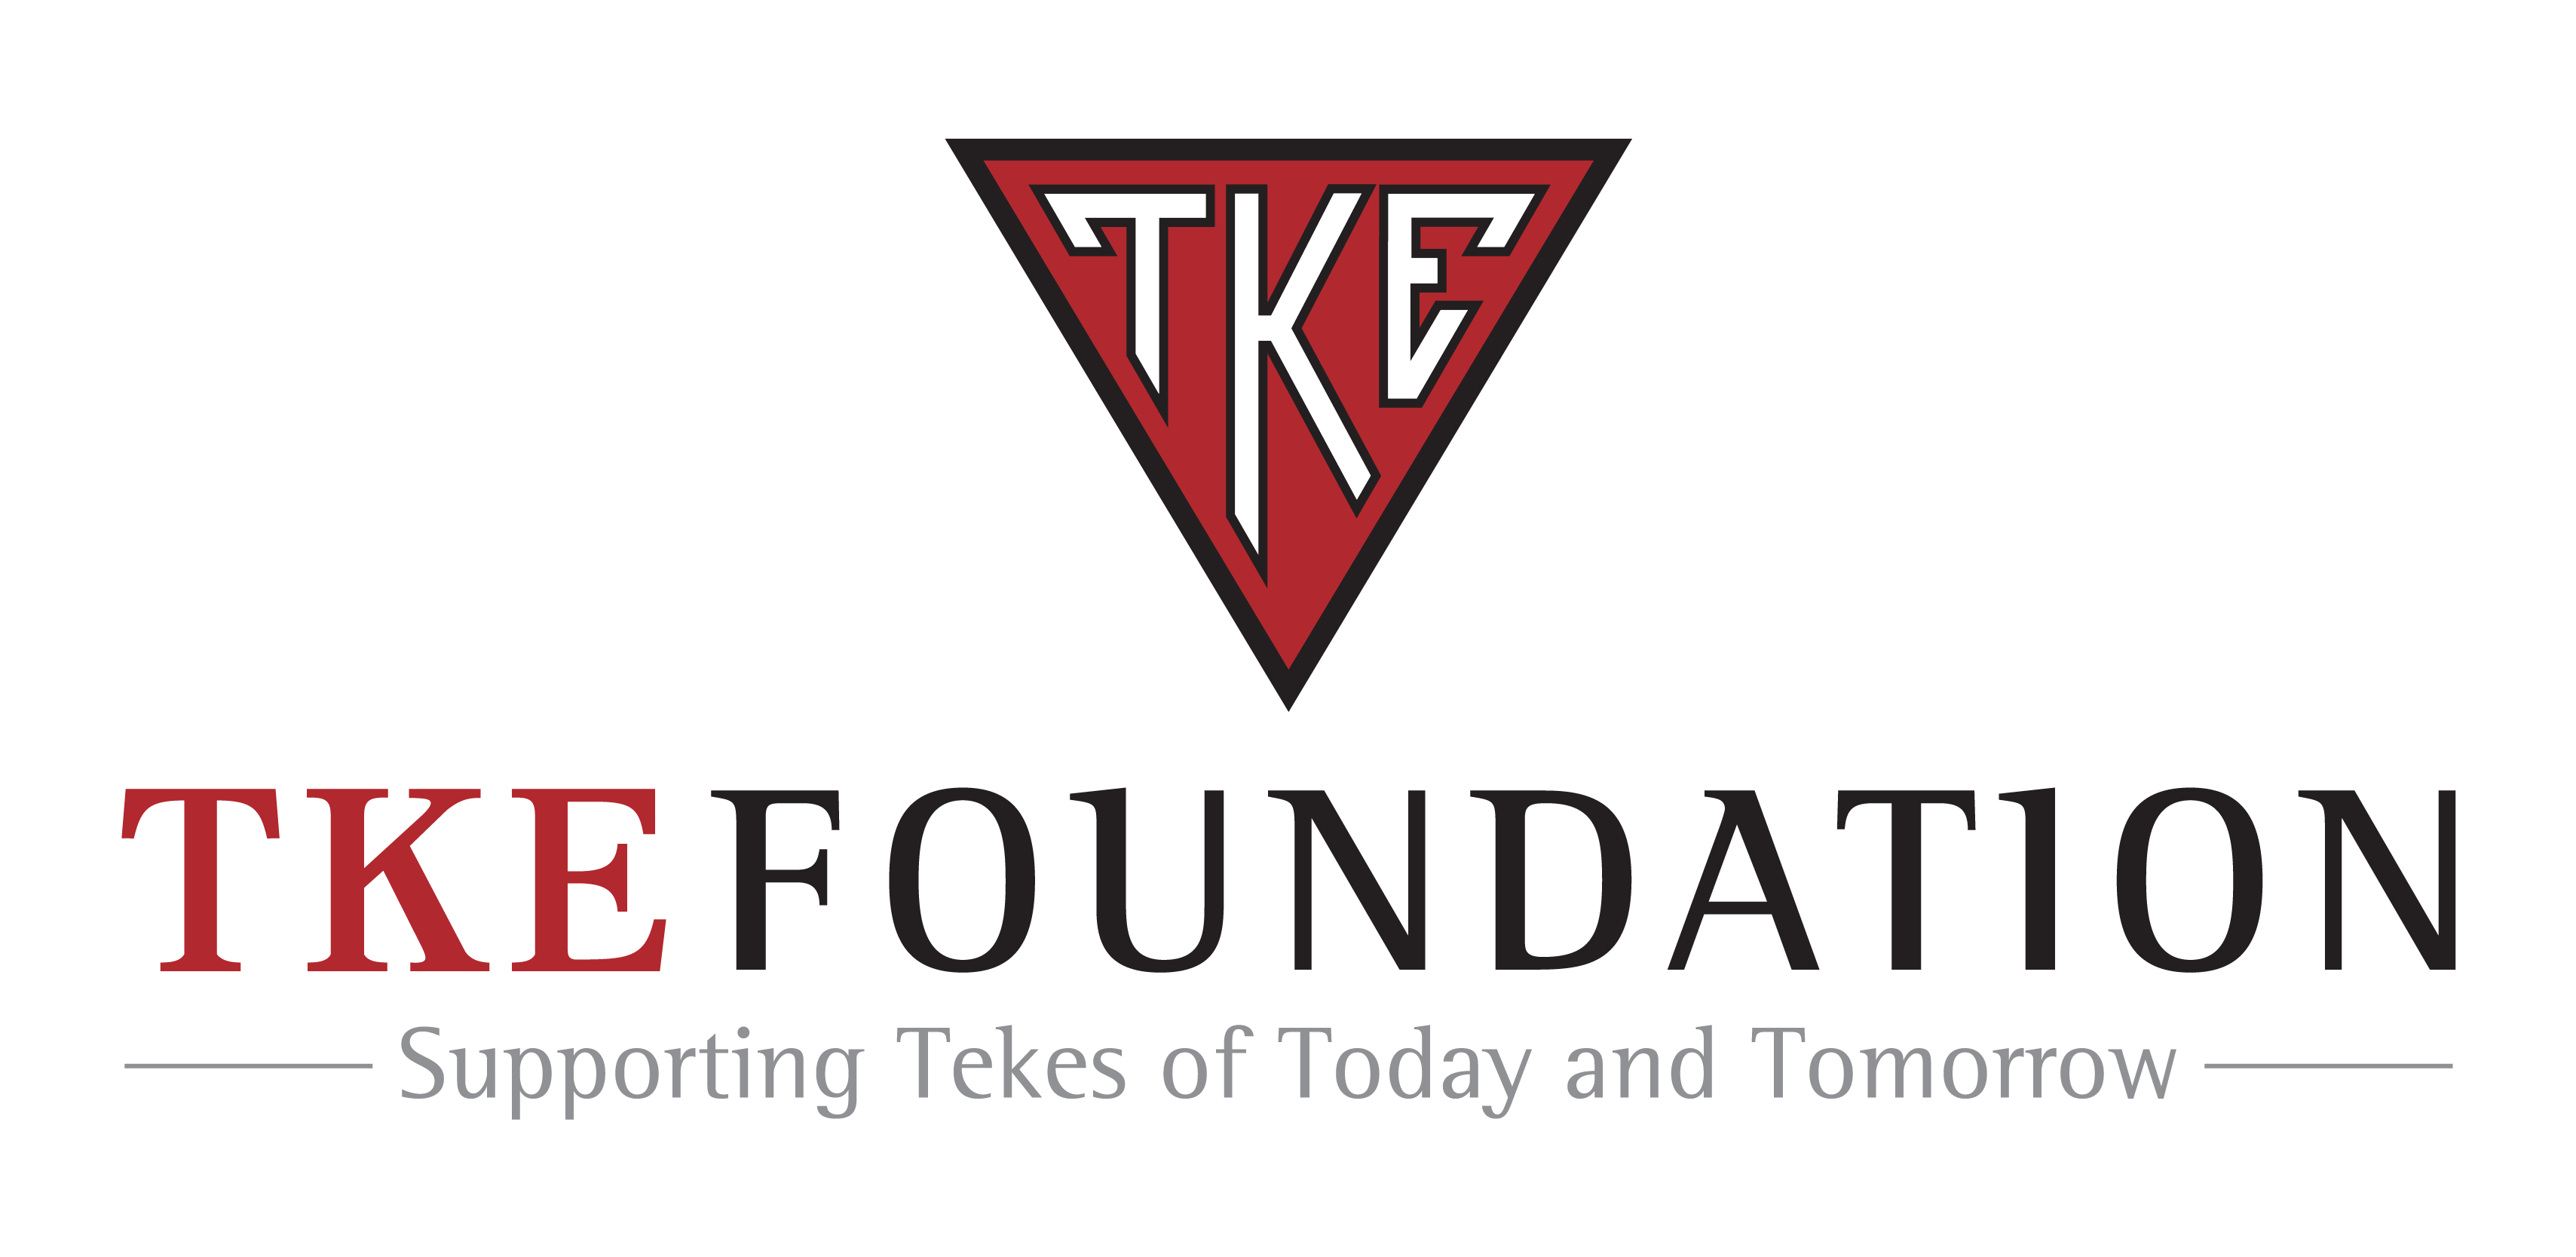 TKE Pride Scholarship Established